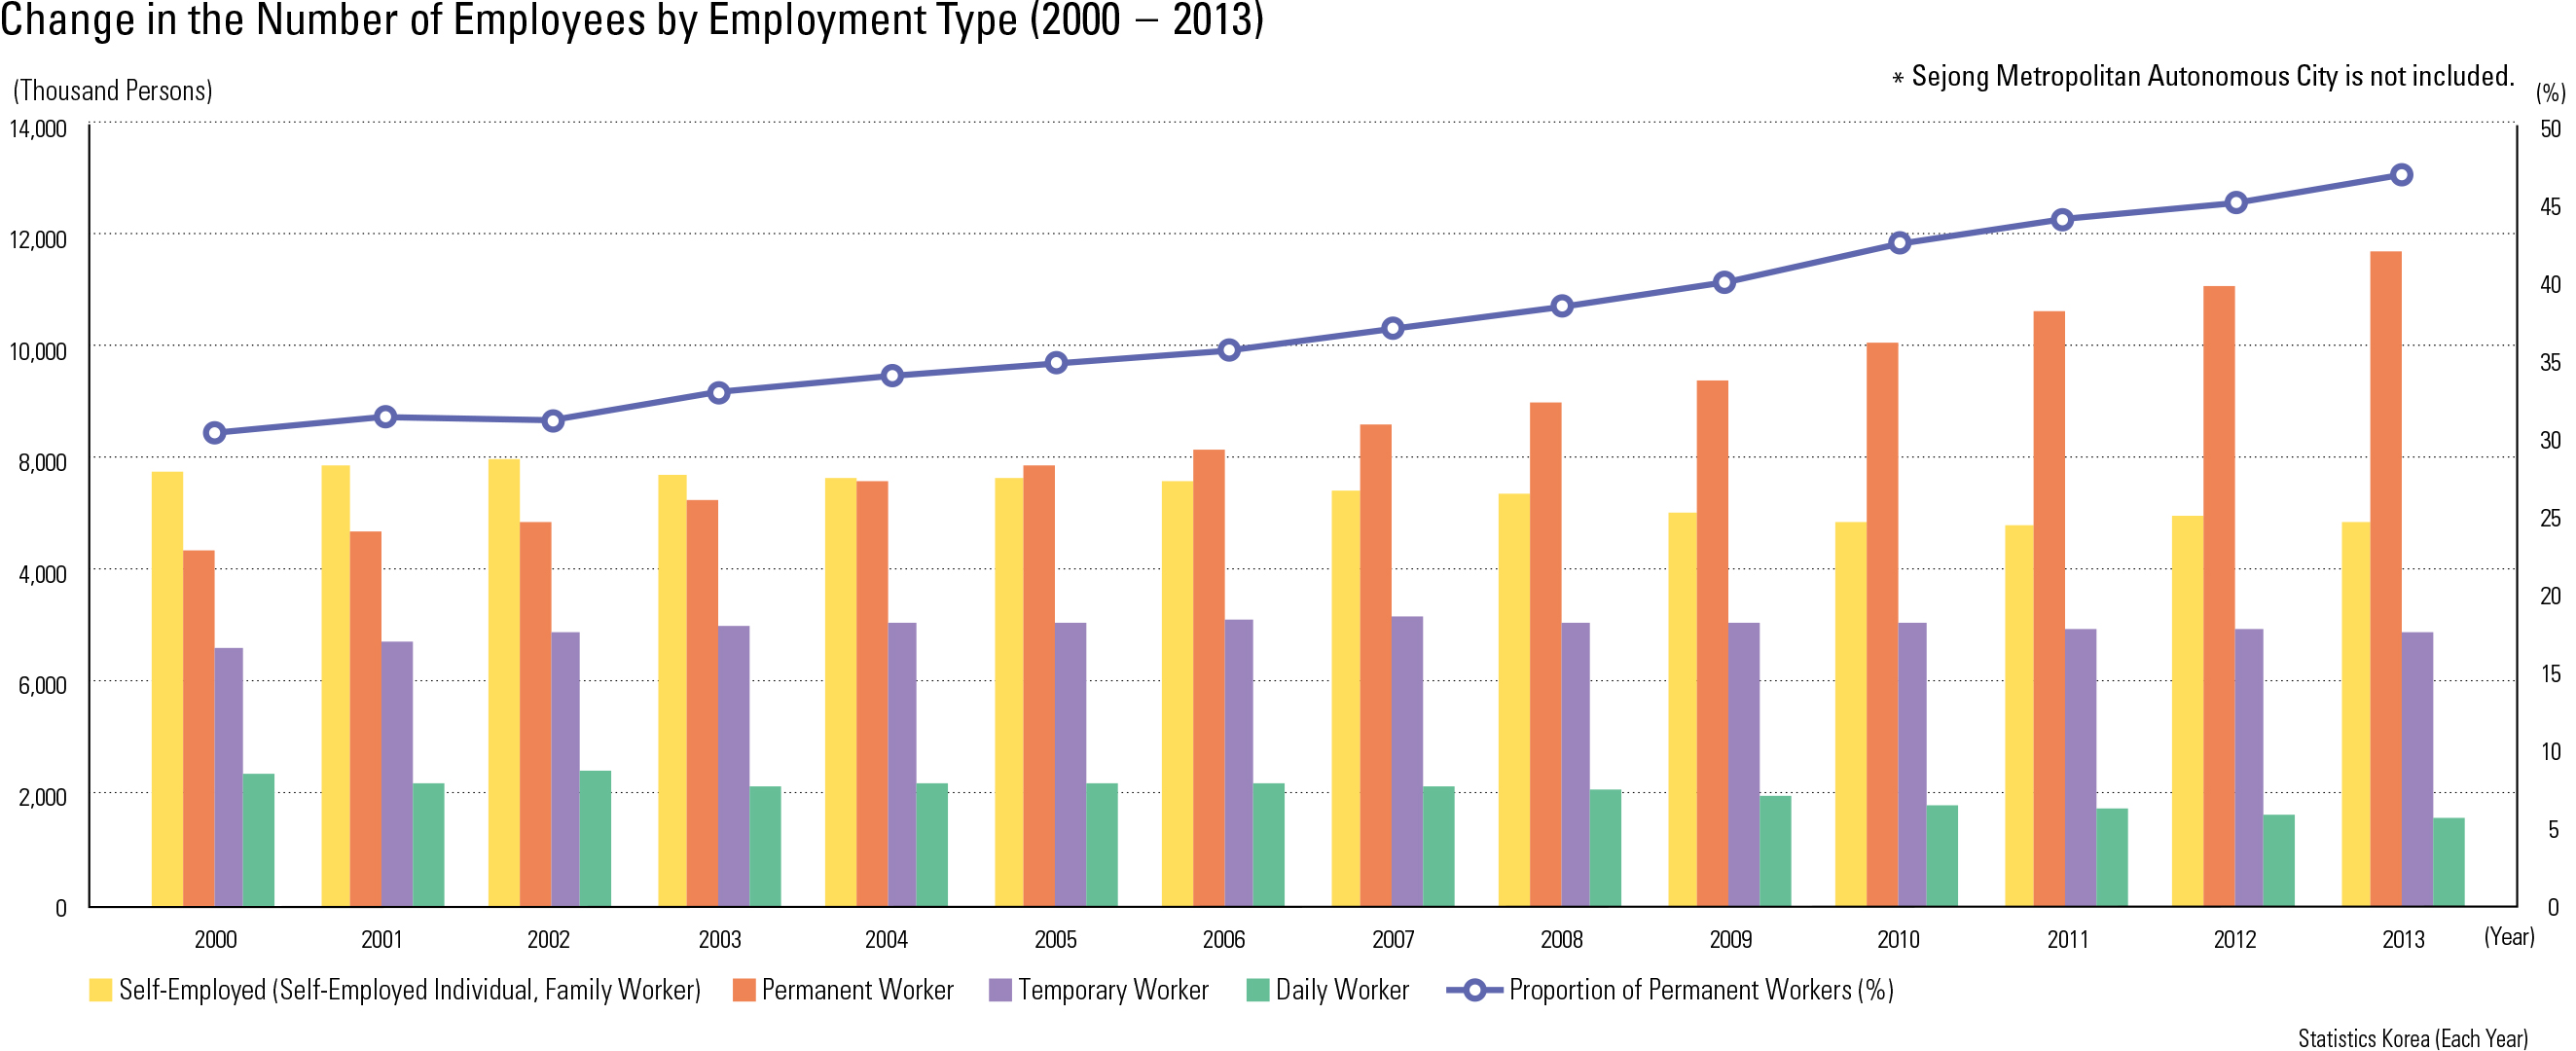 "Change in the Number of Employees by Employment Type (2000 – 2013)<p class=""oz_zoom"" zimg=""http://imagedata.cafe24.com/us_3/us3_196-3_2.jpg""><span style=""font-family:Nanum Myeongjo;""><span style=""font-size:18px;""><span class=""label label-danger"">UPDATE DATA</span></span></p>"